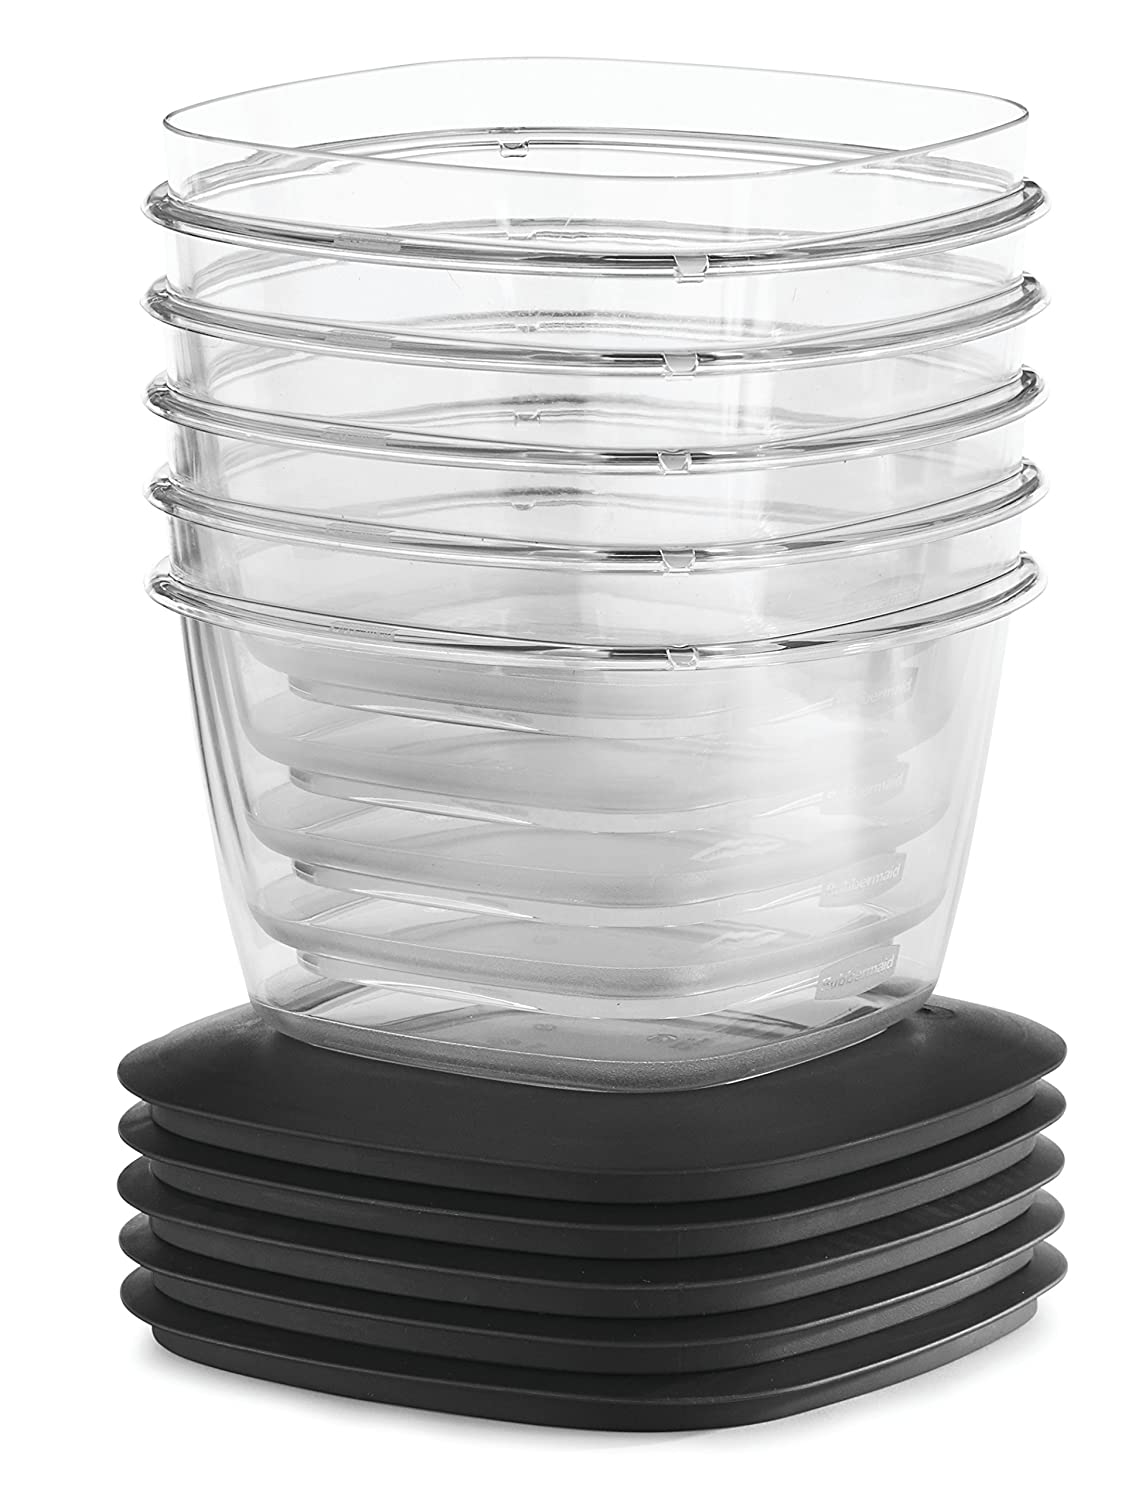 Rubbermaid Premier Food Storage Container, 7 Cup, 5-Pack, Grey